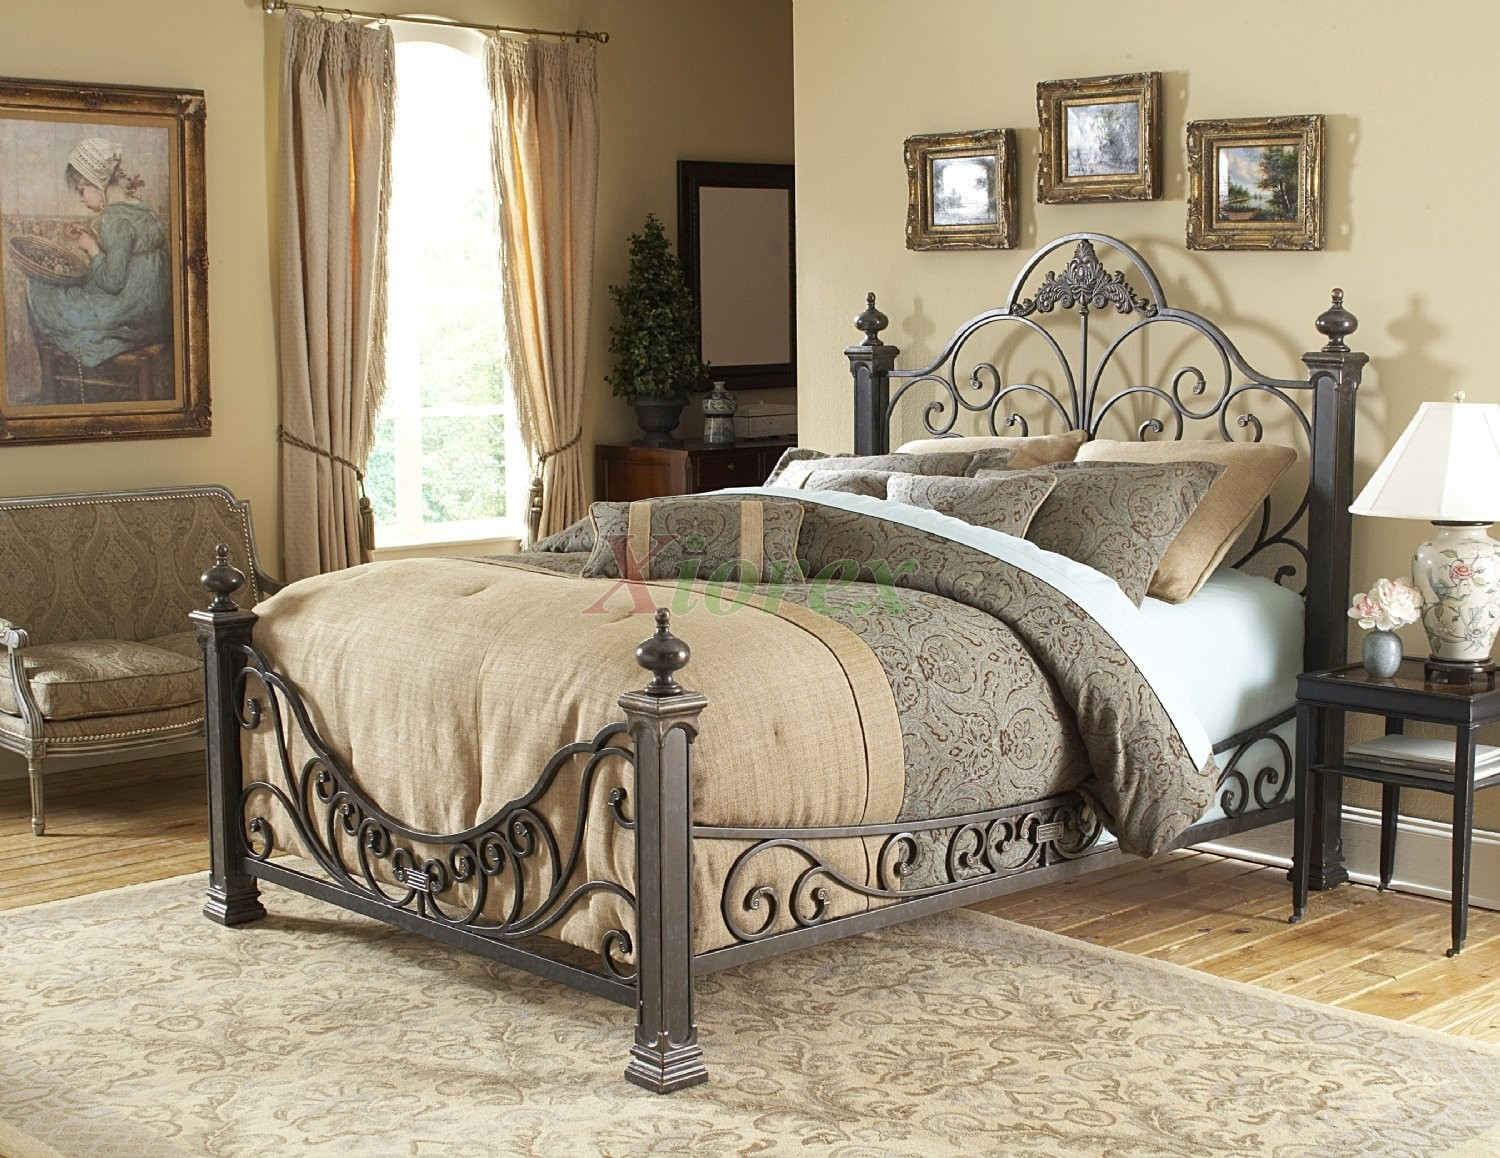 Fashion Bedroom Furniture Endearing Baroque Bed  Poster Bed In Gilded Slatefashion Bed Group  Xiorex Decorating Design